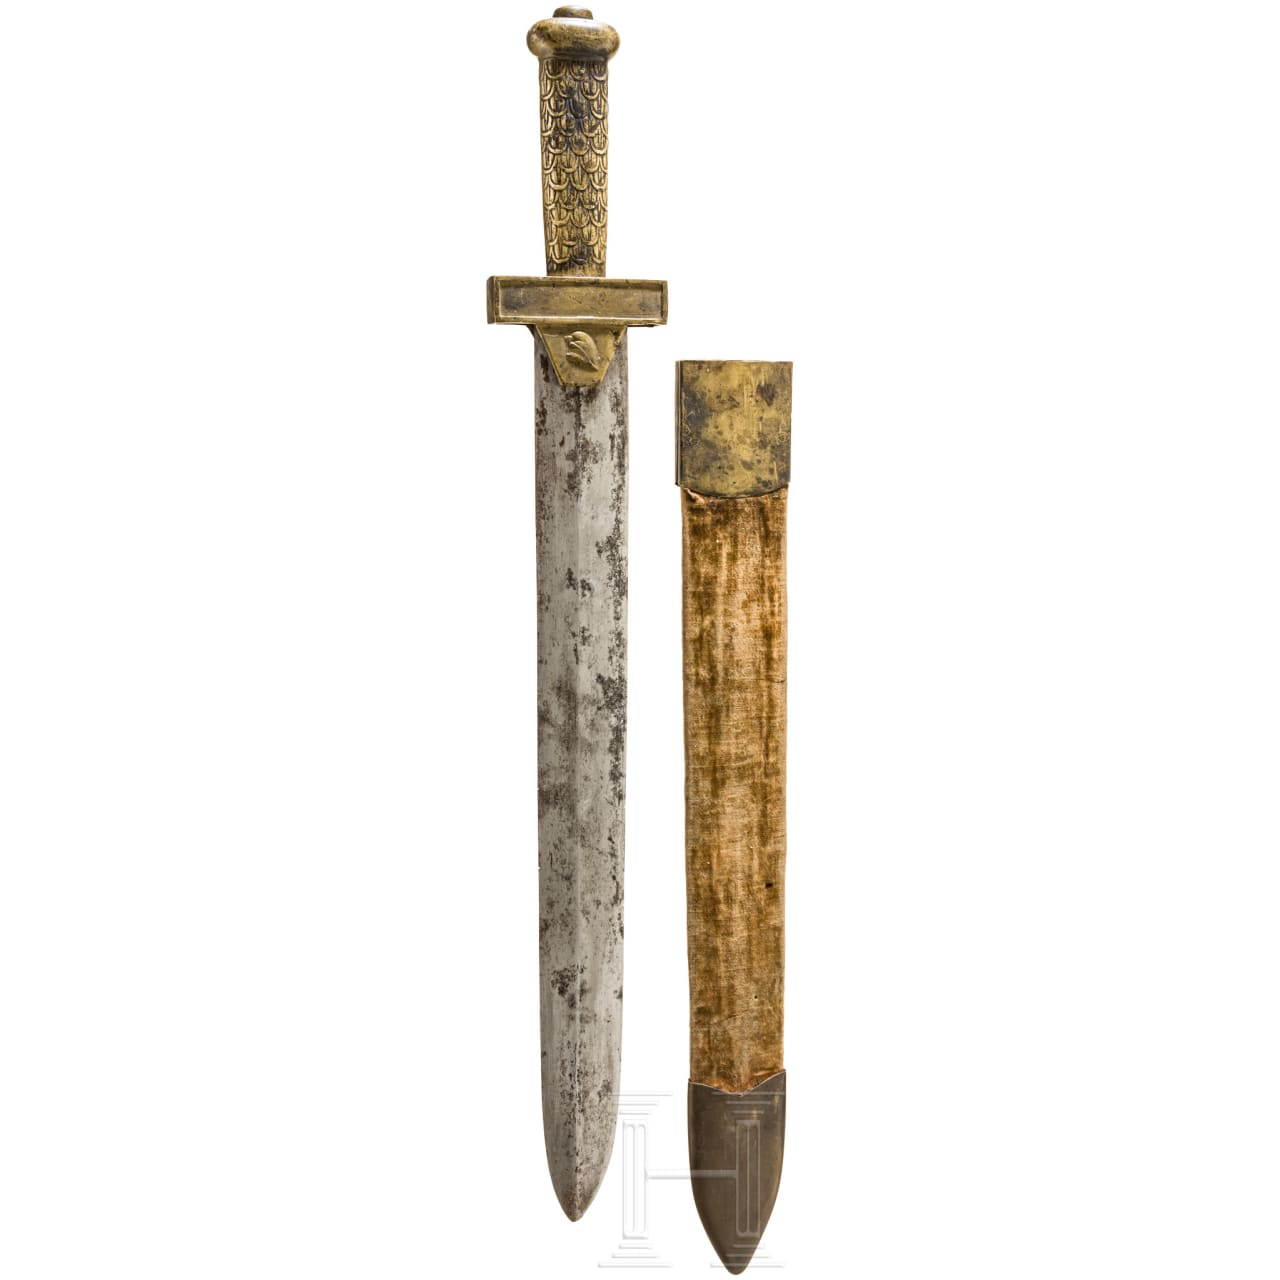 Short sword of the revolution period, late 18th century